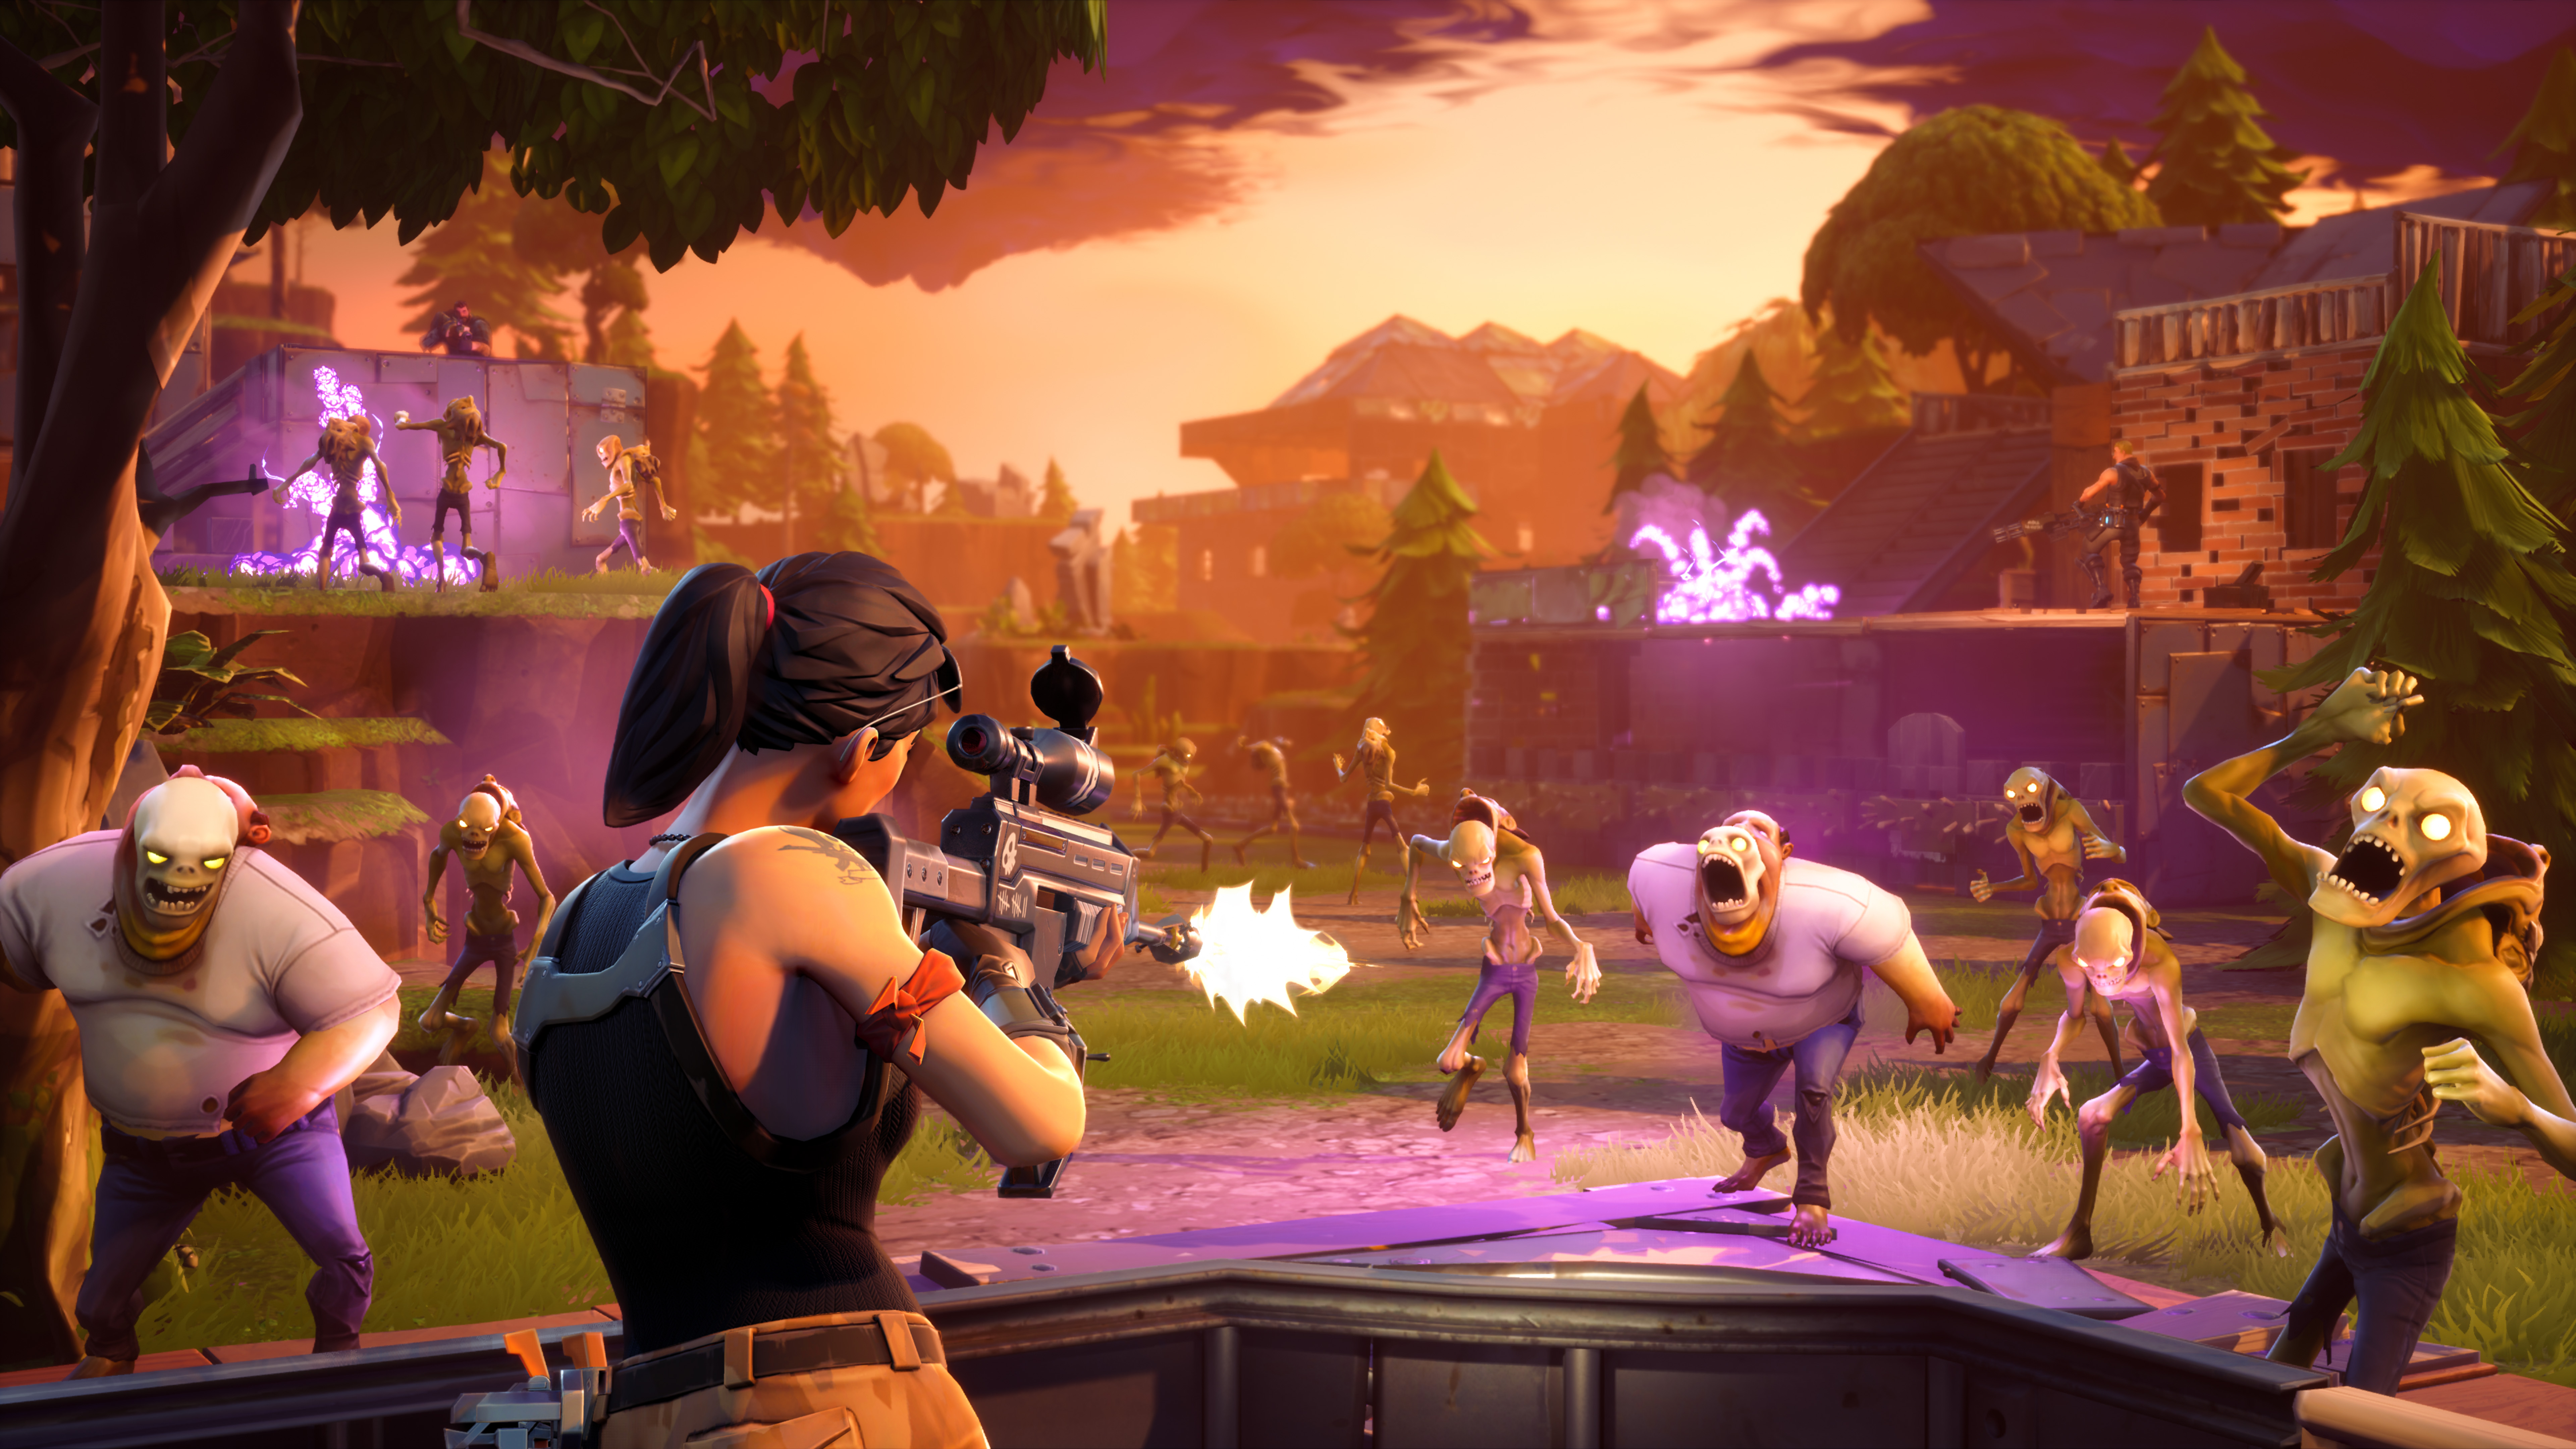 How To Keep Your Fortnite Account Safe From Hackers Polygon - how to keep your fortnite account safe from hackers